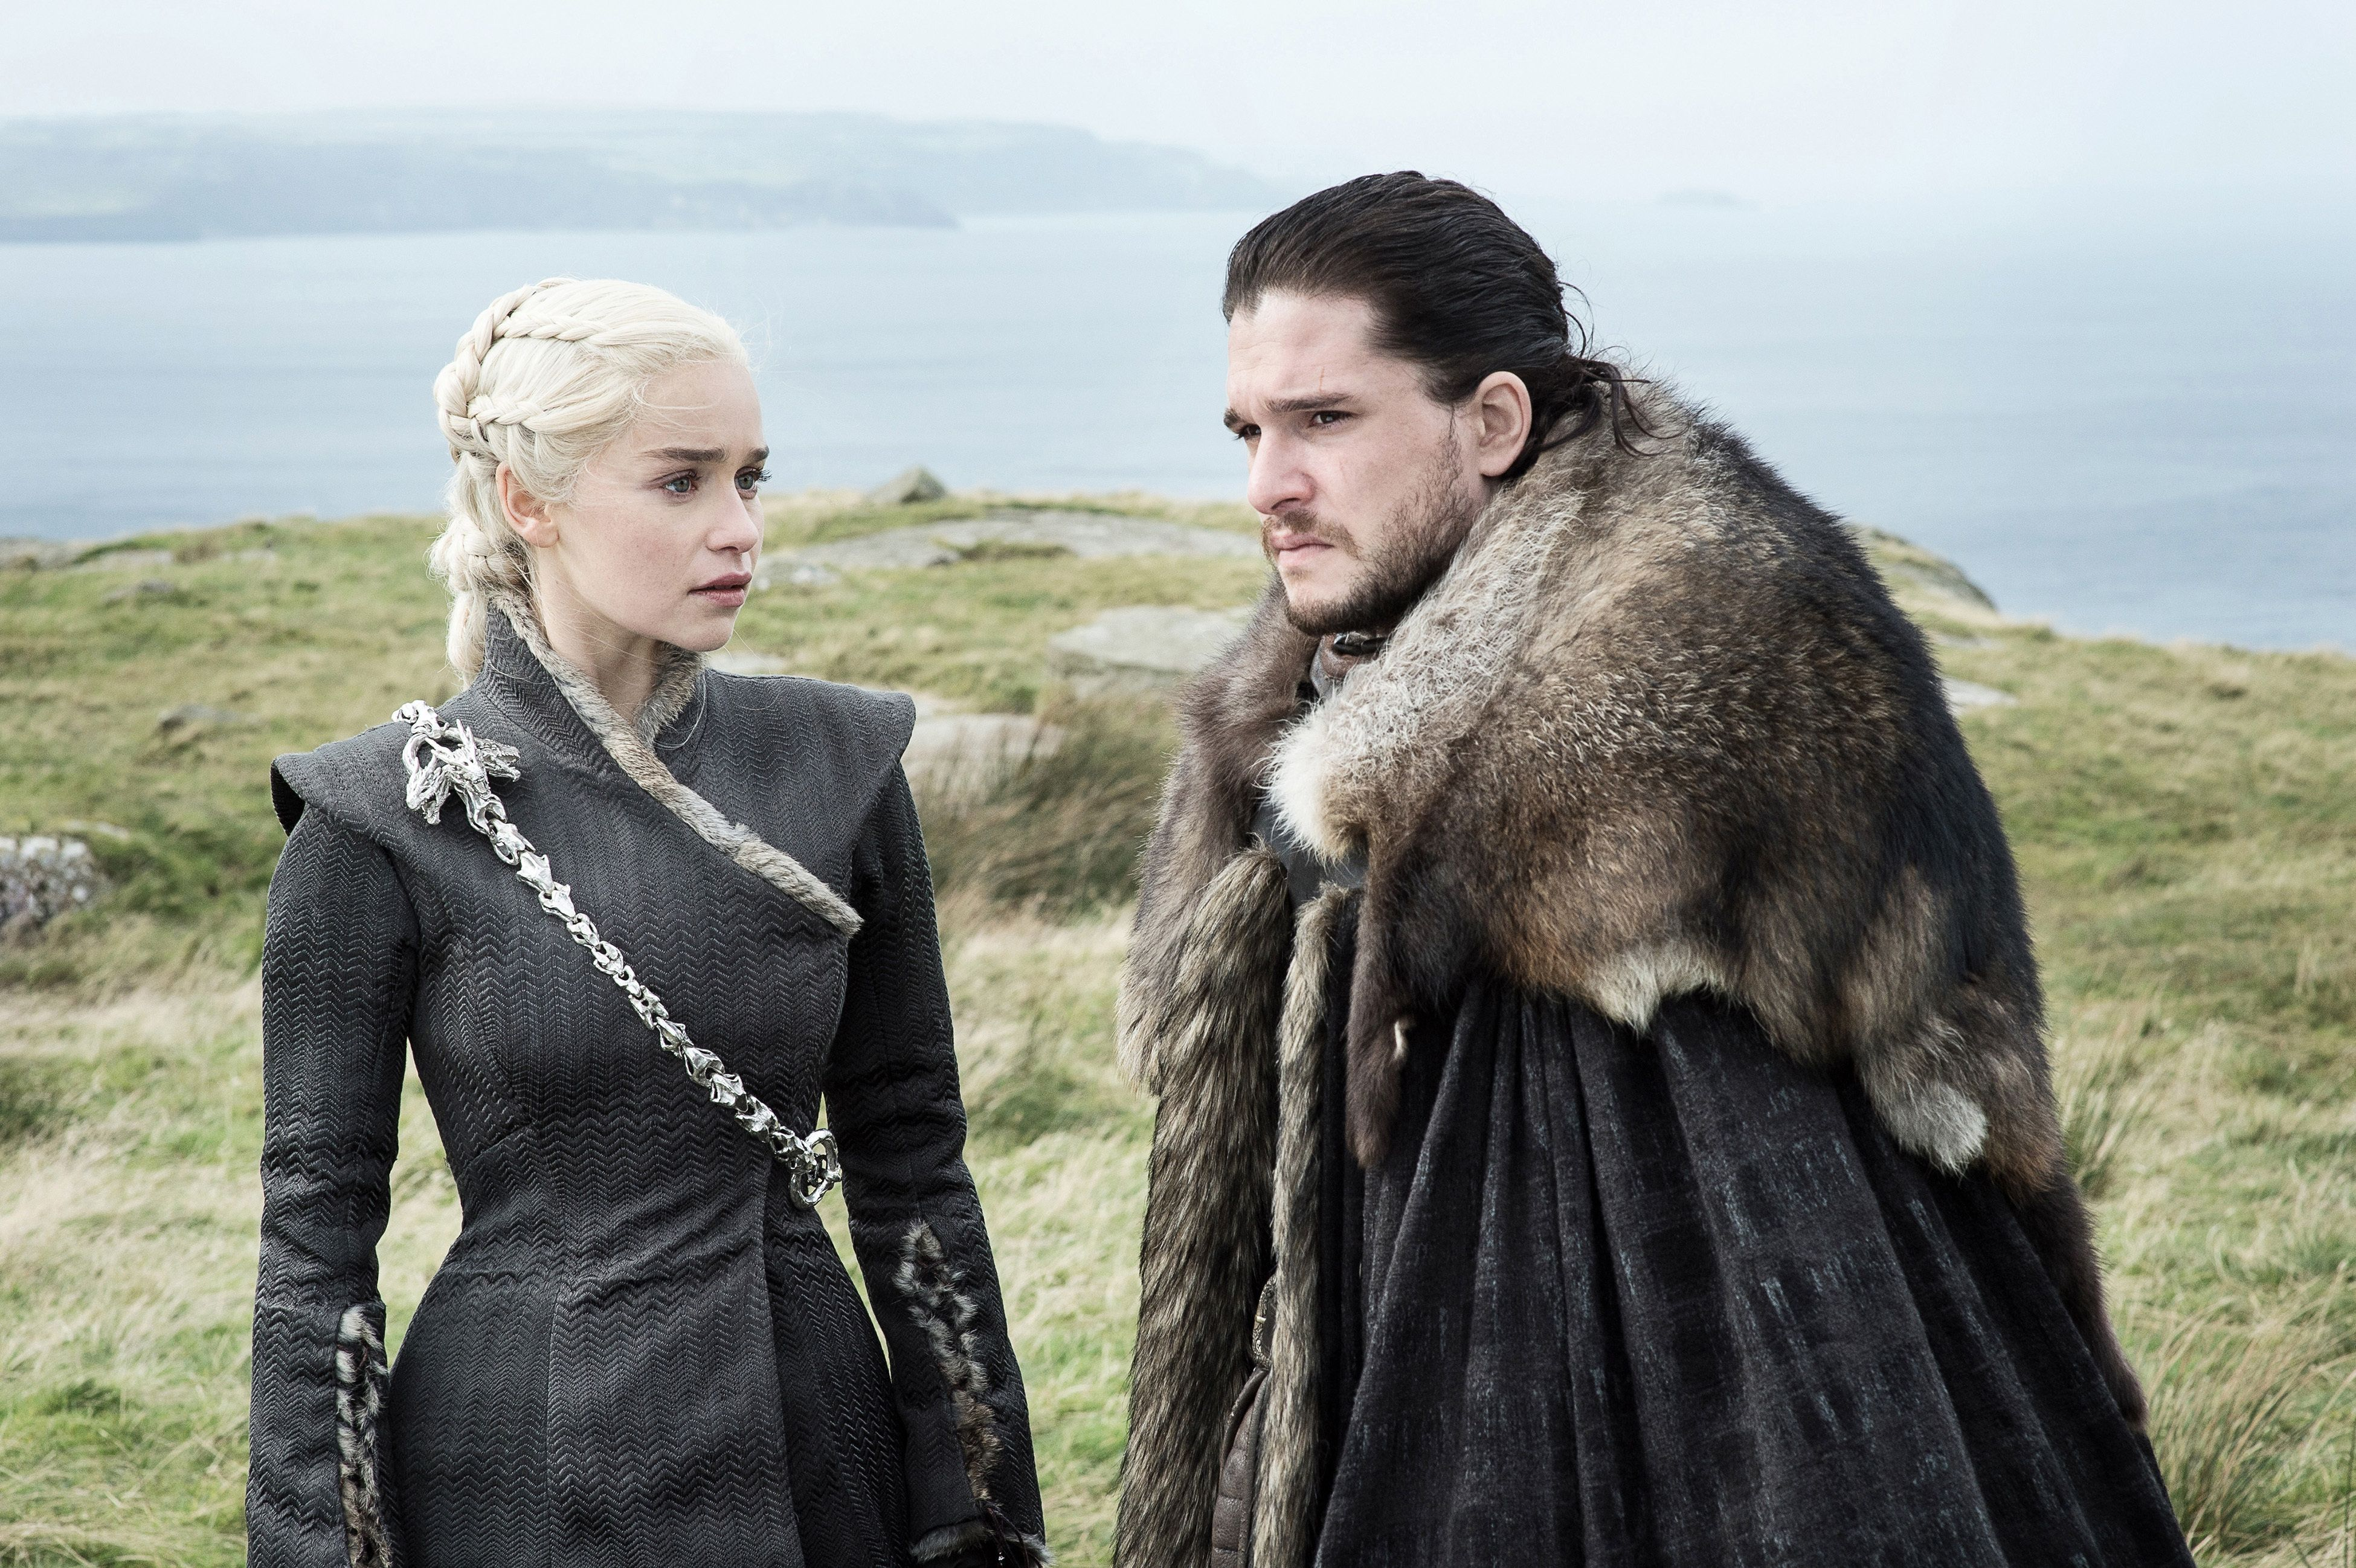 """According to a new study, Jon Snow has a better chance of surviving at the end of """"Game of Thrones"""" than Daenerys Targaryen."""